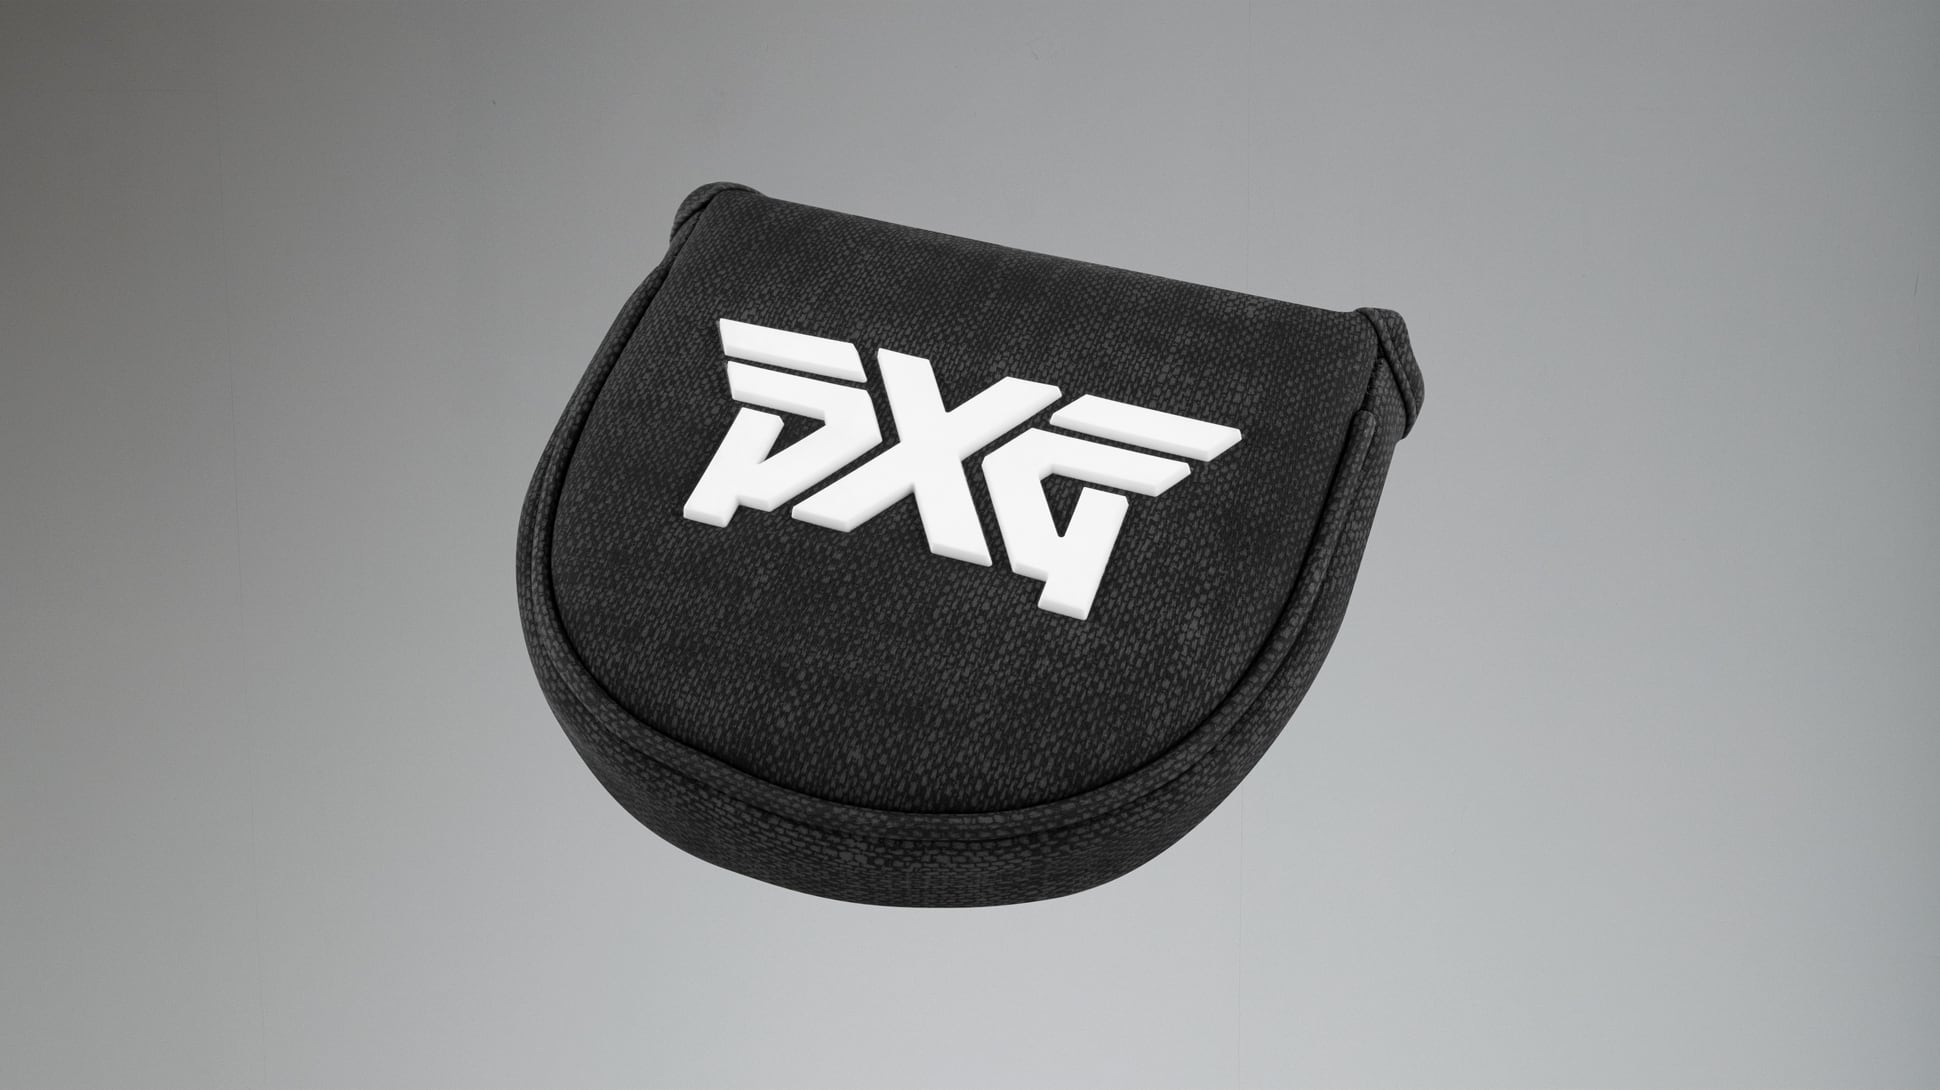 Deluxe Performance Mallet Putter Headcover Image 1